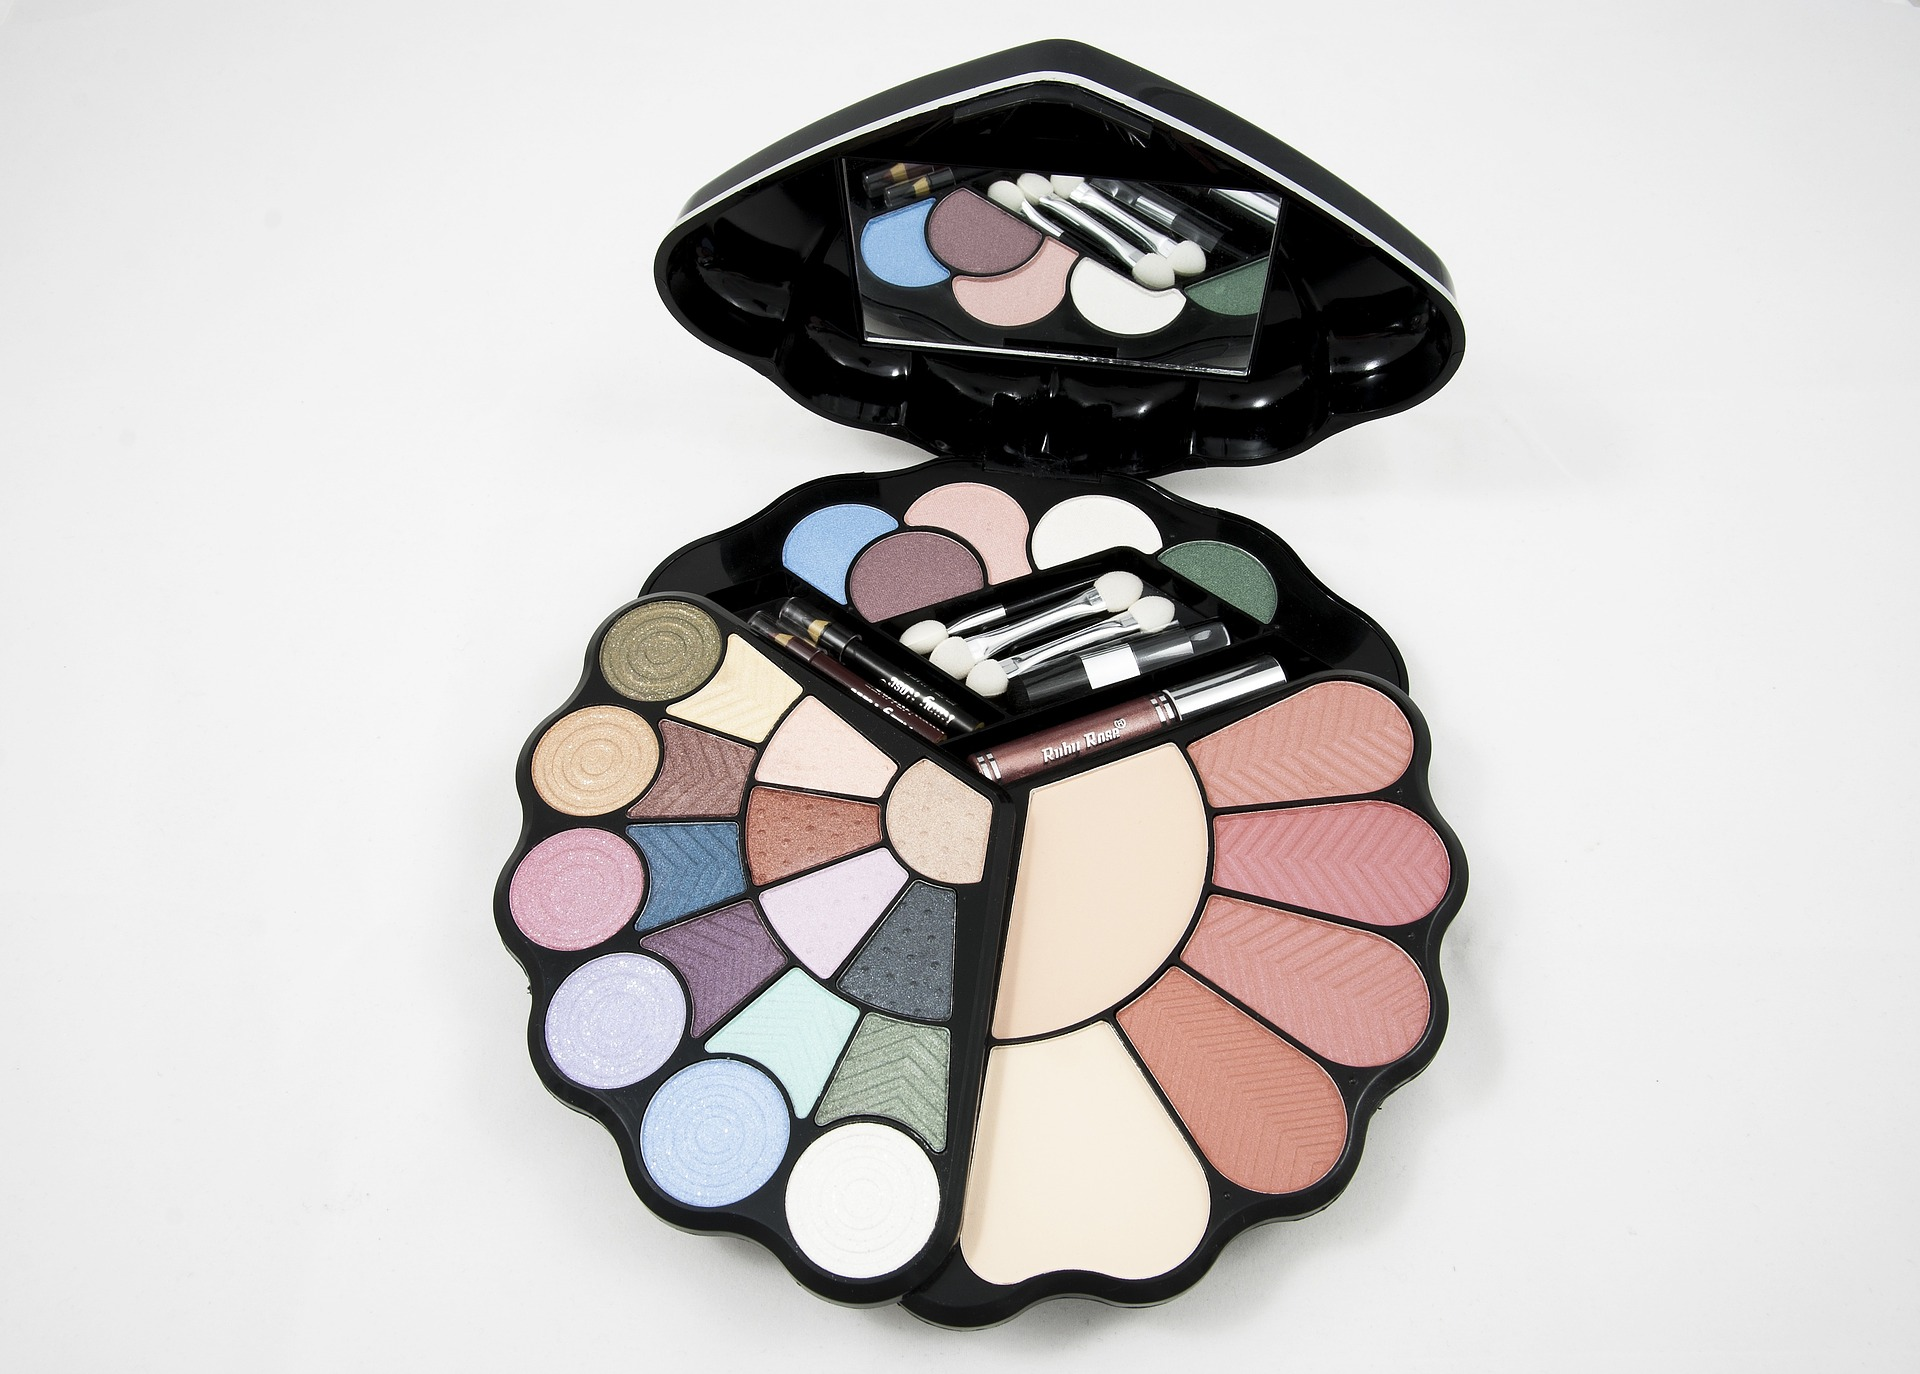 eyeshadow-682997_1920